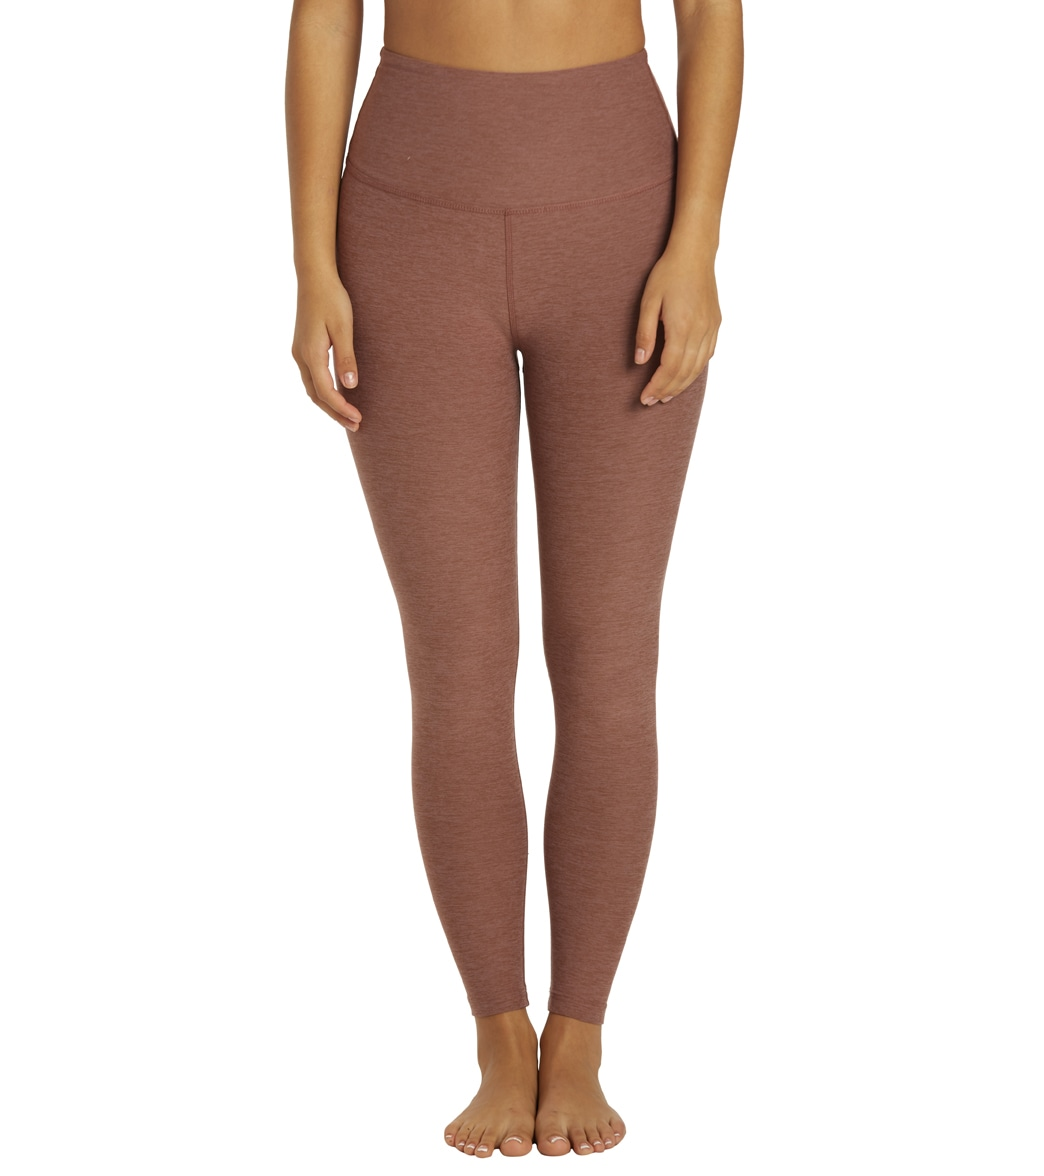 f048523307 Beyond Yoga Spacedye High Waisted Caught In The Midi 7/8 Yoga Leggings at  YogaOutlet.com - Free Shipping